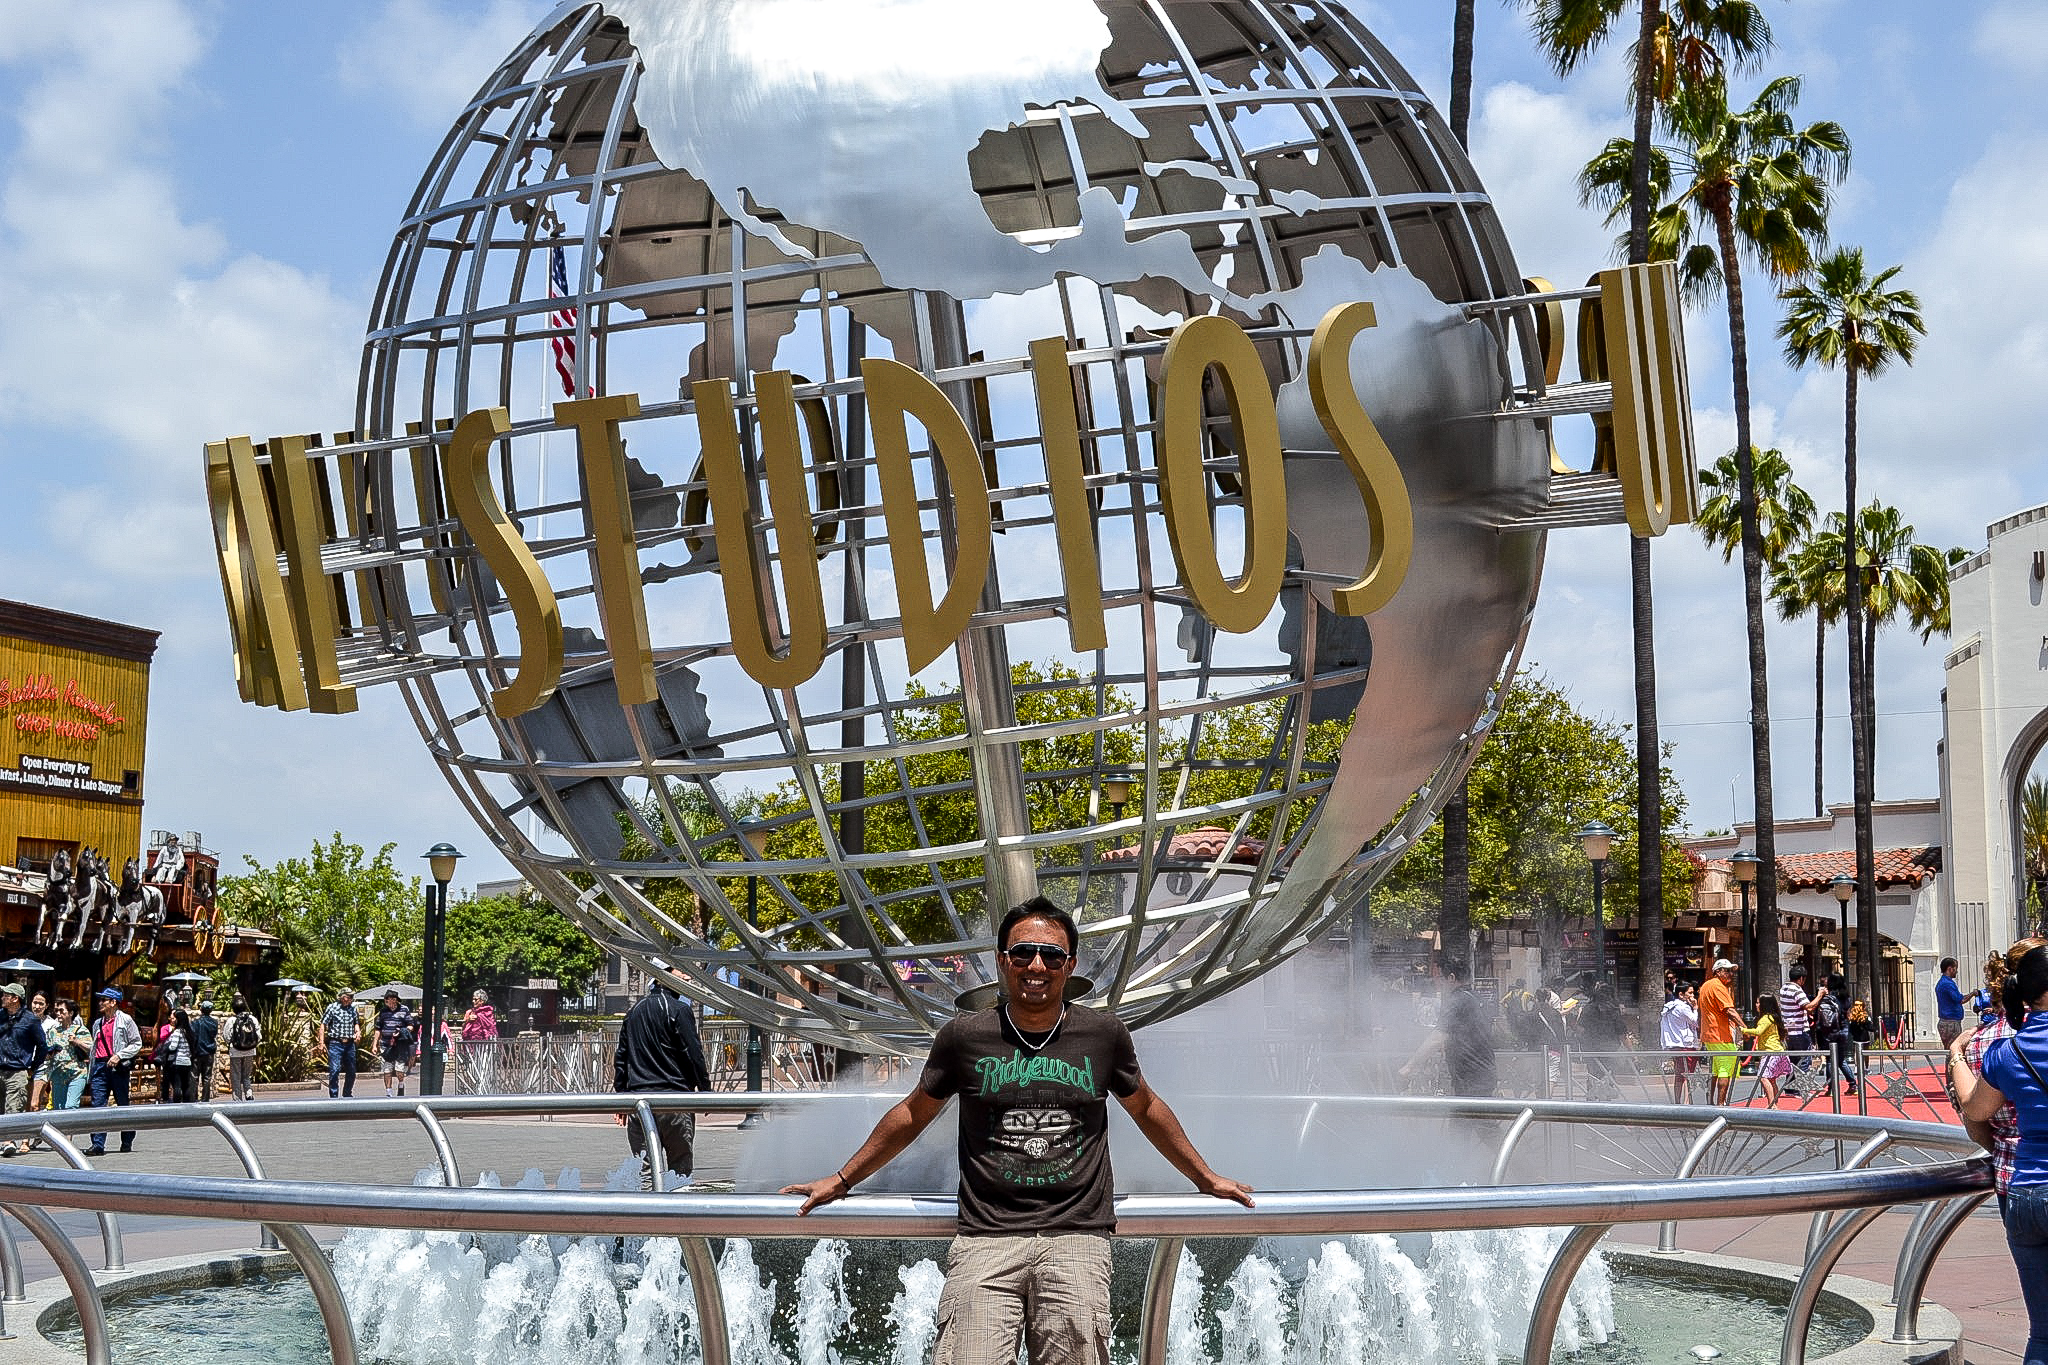 That mandatory picture - Universal Studios